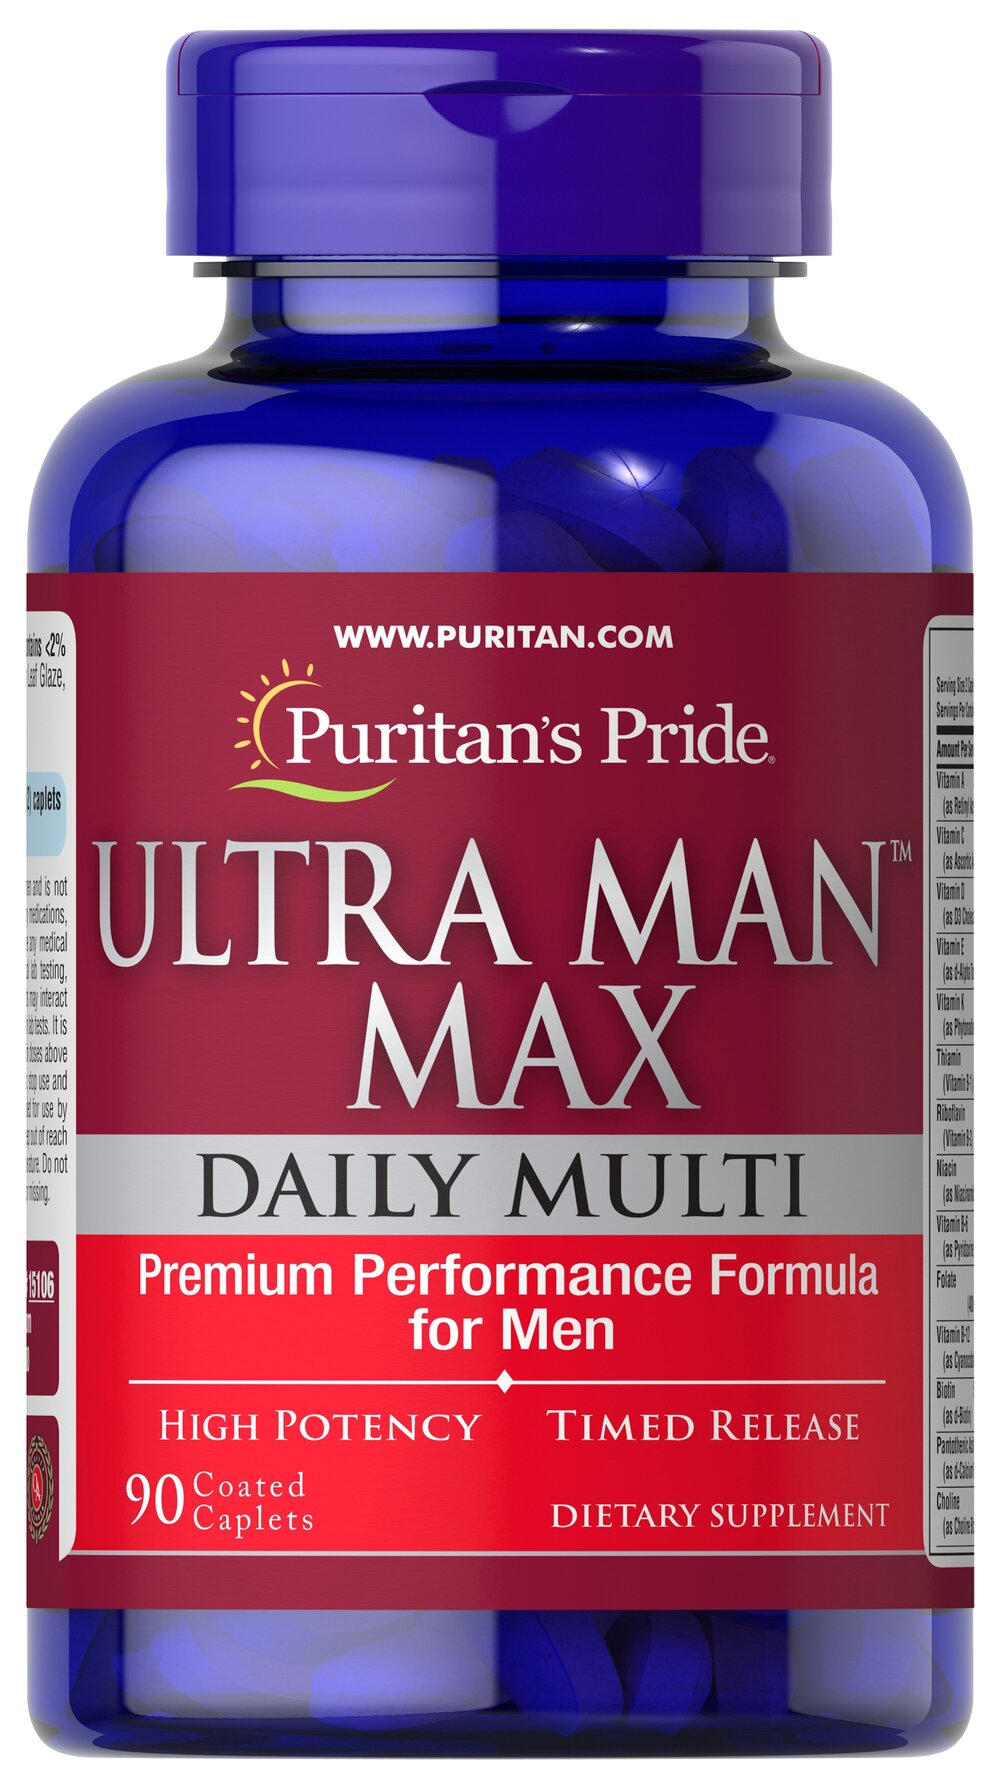 Ultra Man Max <p>•	Premium Daily Multivitamin for Men </p><p>•	High Potency Multivitamin to Support Energy ** </p><p>•	For Men's Most Important Nutritional Needs  </p><p>This exceptional high potency time-release formula is created especially for men who are looking for more from their multivitamin. The balanced multi-nutrient formula in each serving supplies numerous vitamins, minerals, herbs, plant nutrients and other important factors shown to be